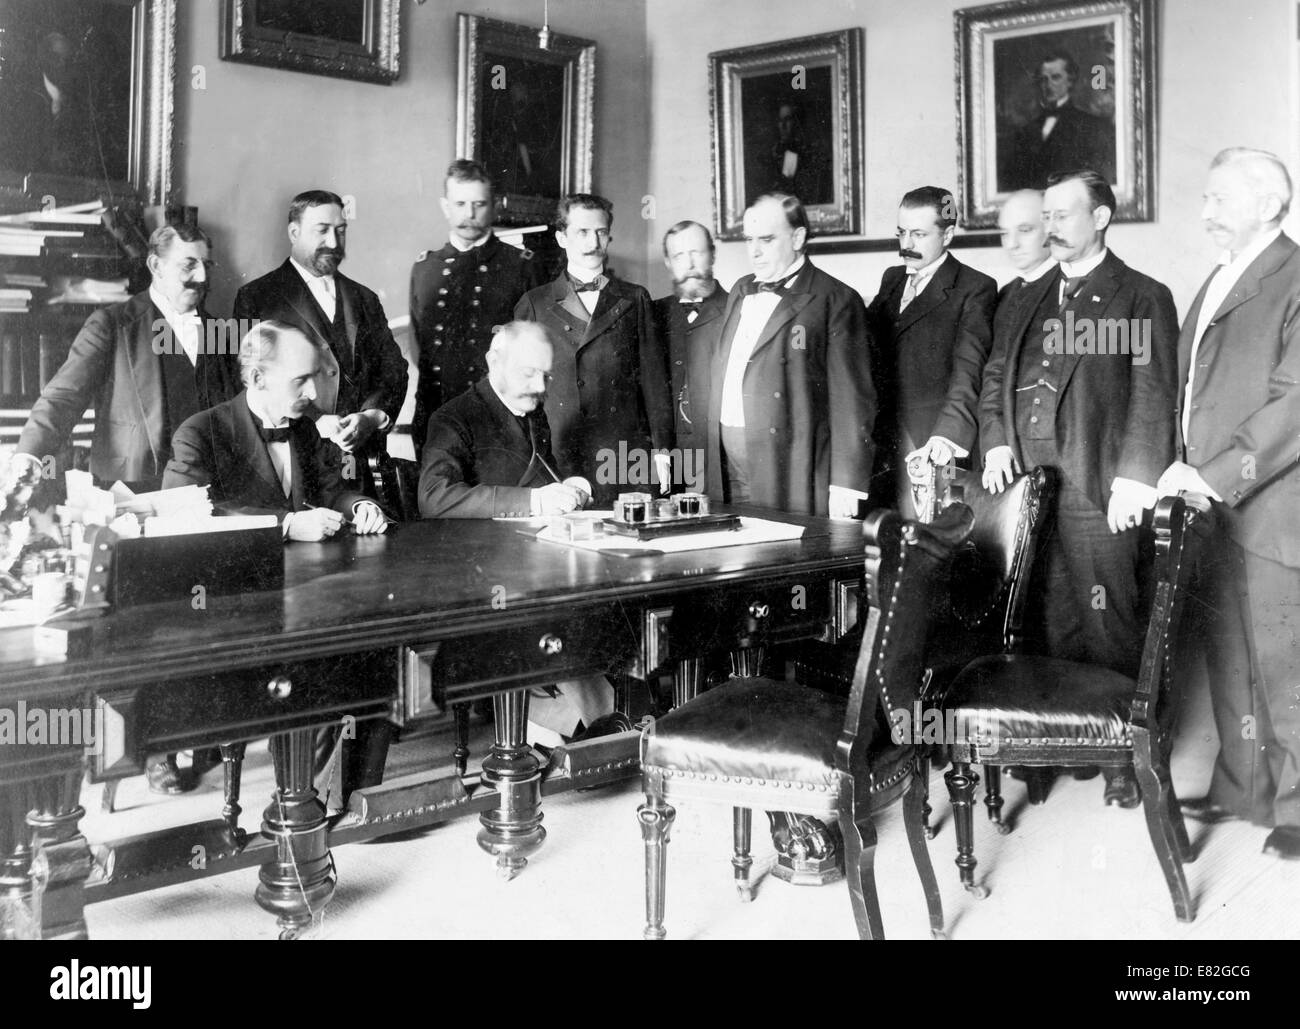 French Ambassador Pierre Paul Cambon signing the Peace Protocol, as President William McKinley and ten other men - Stock Image